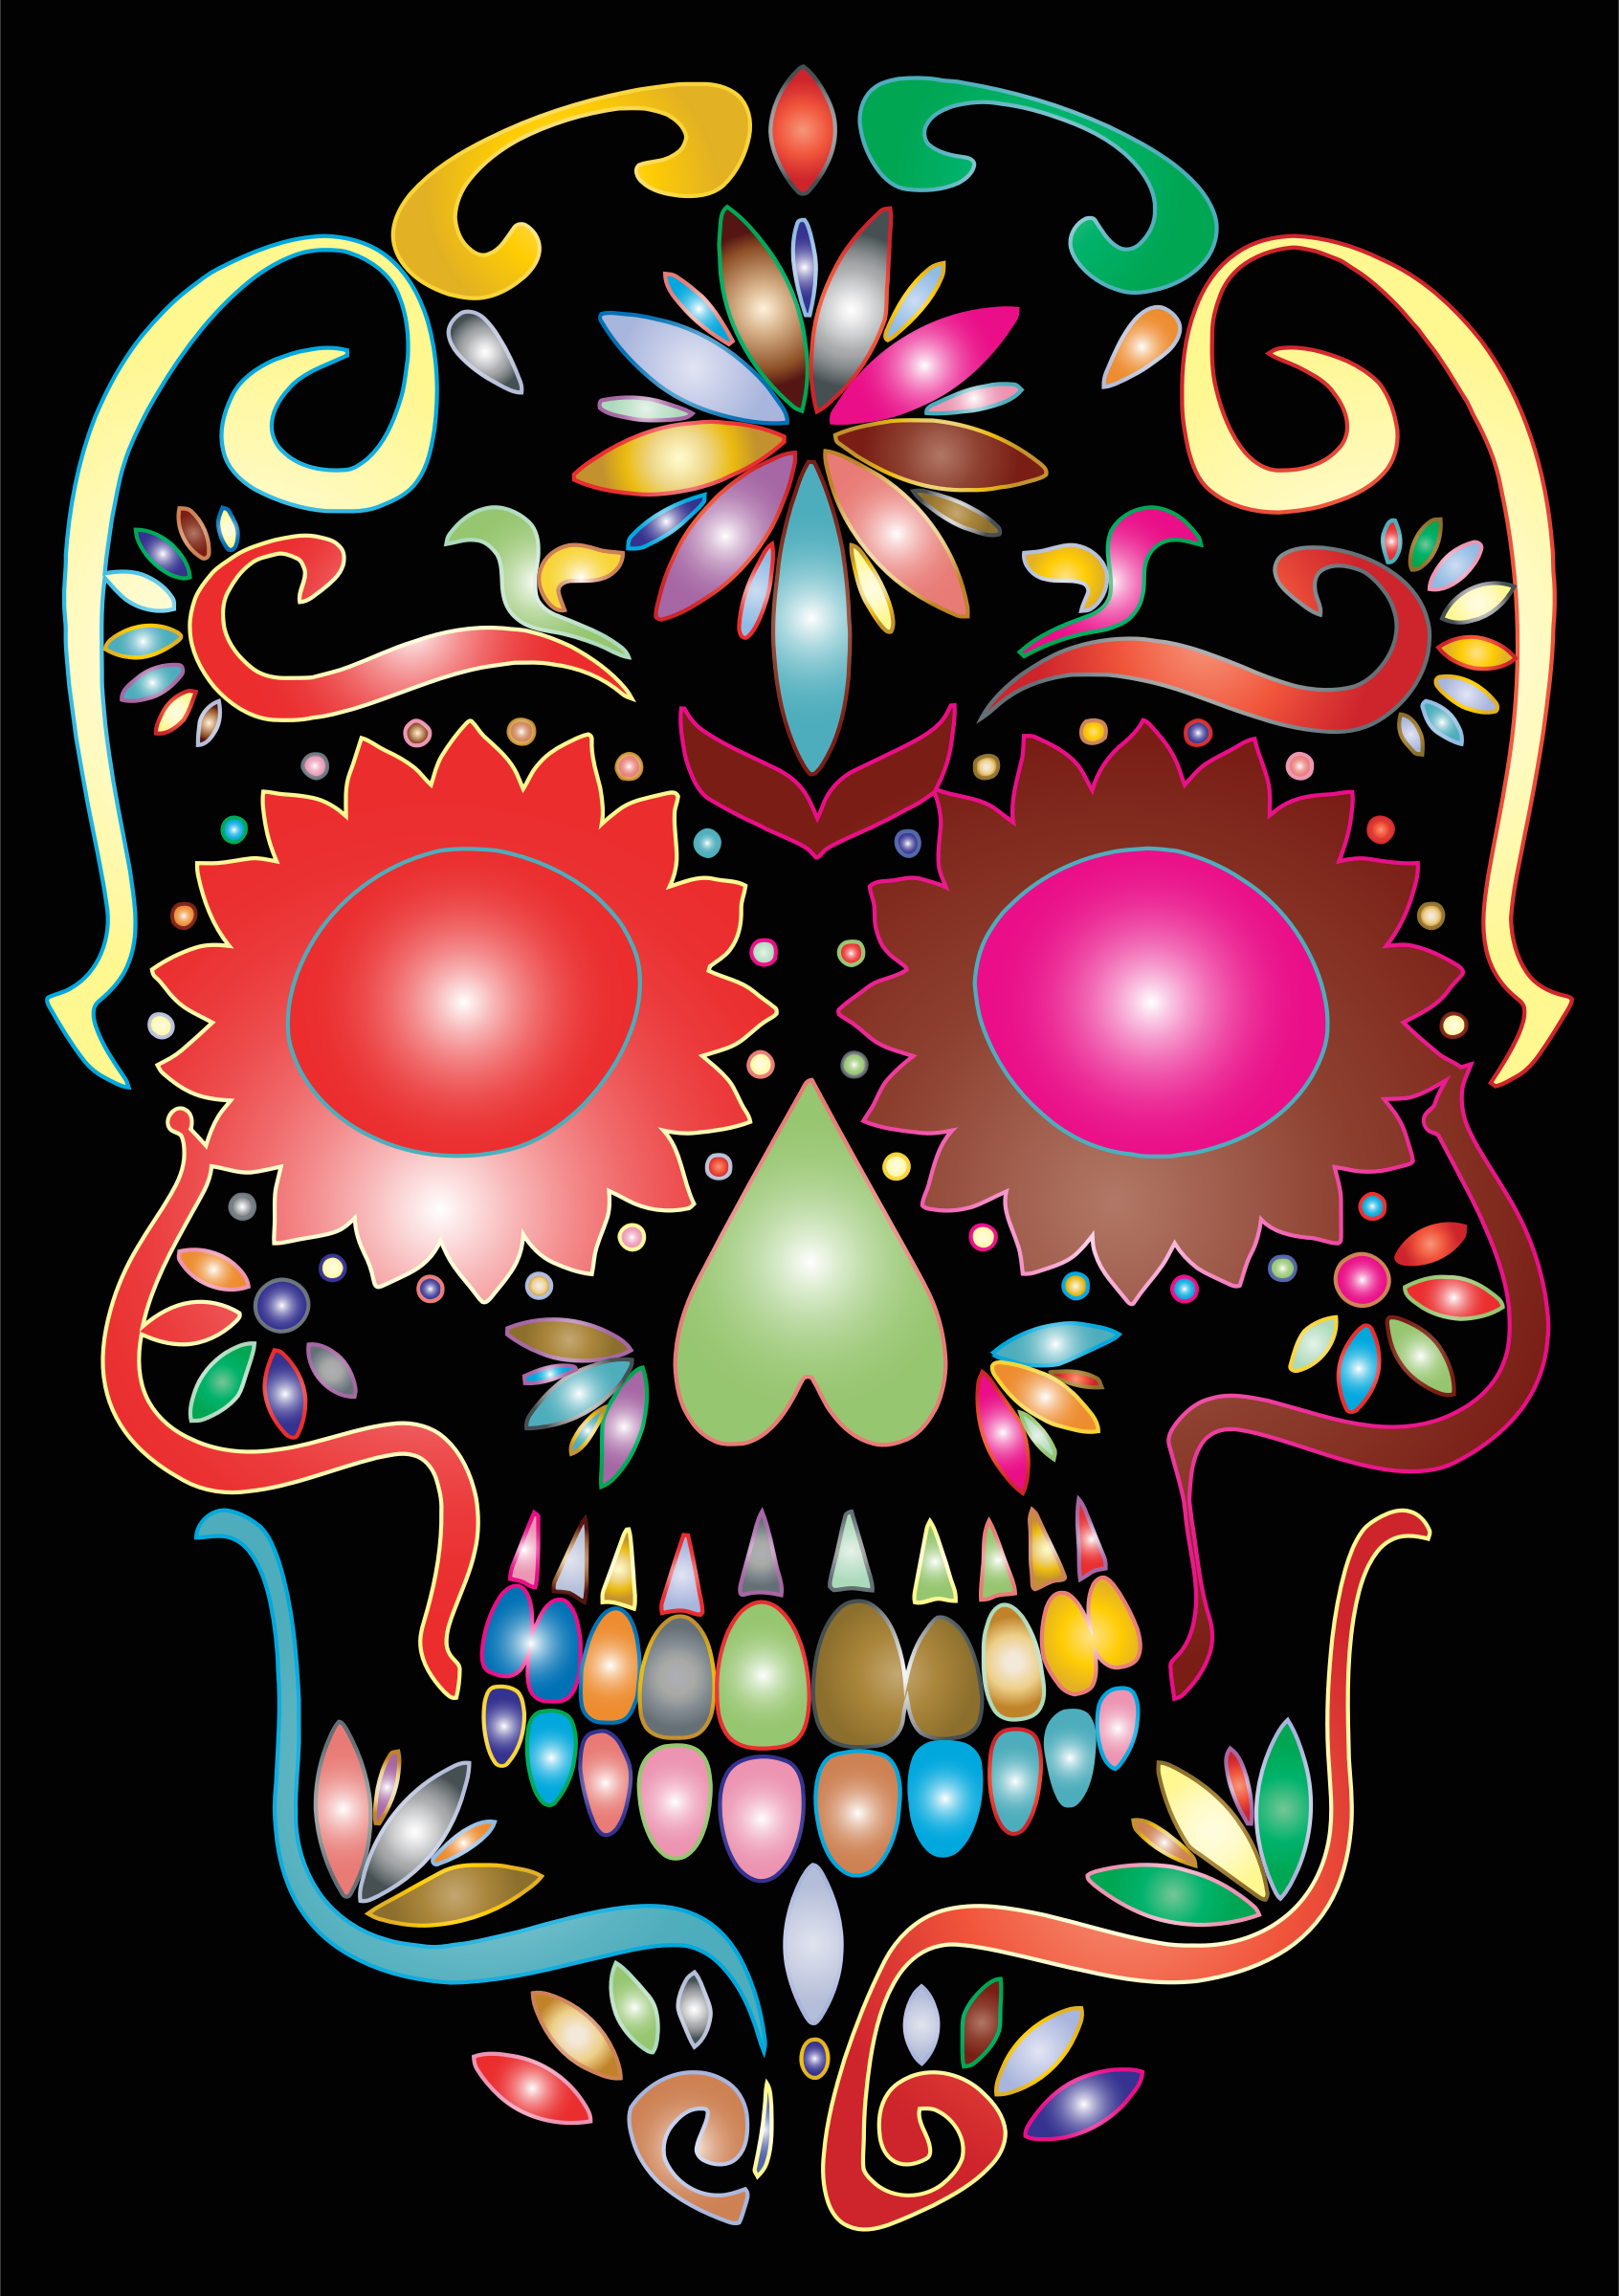 Prismatic Sugar Skull Silhouette by GDJ